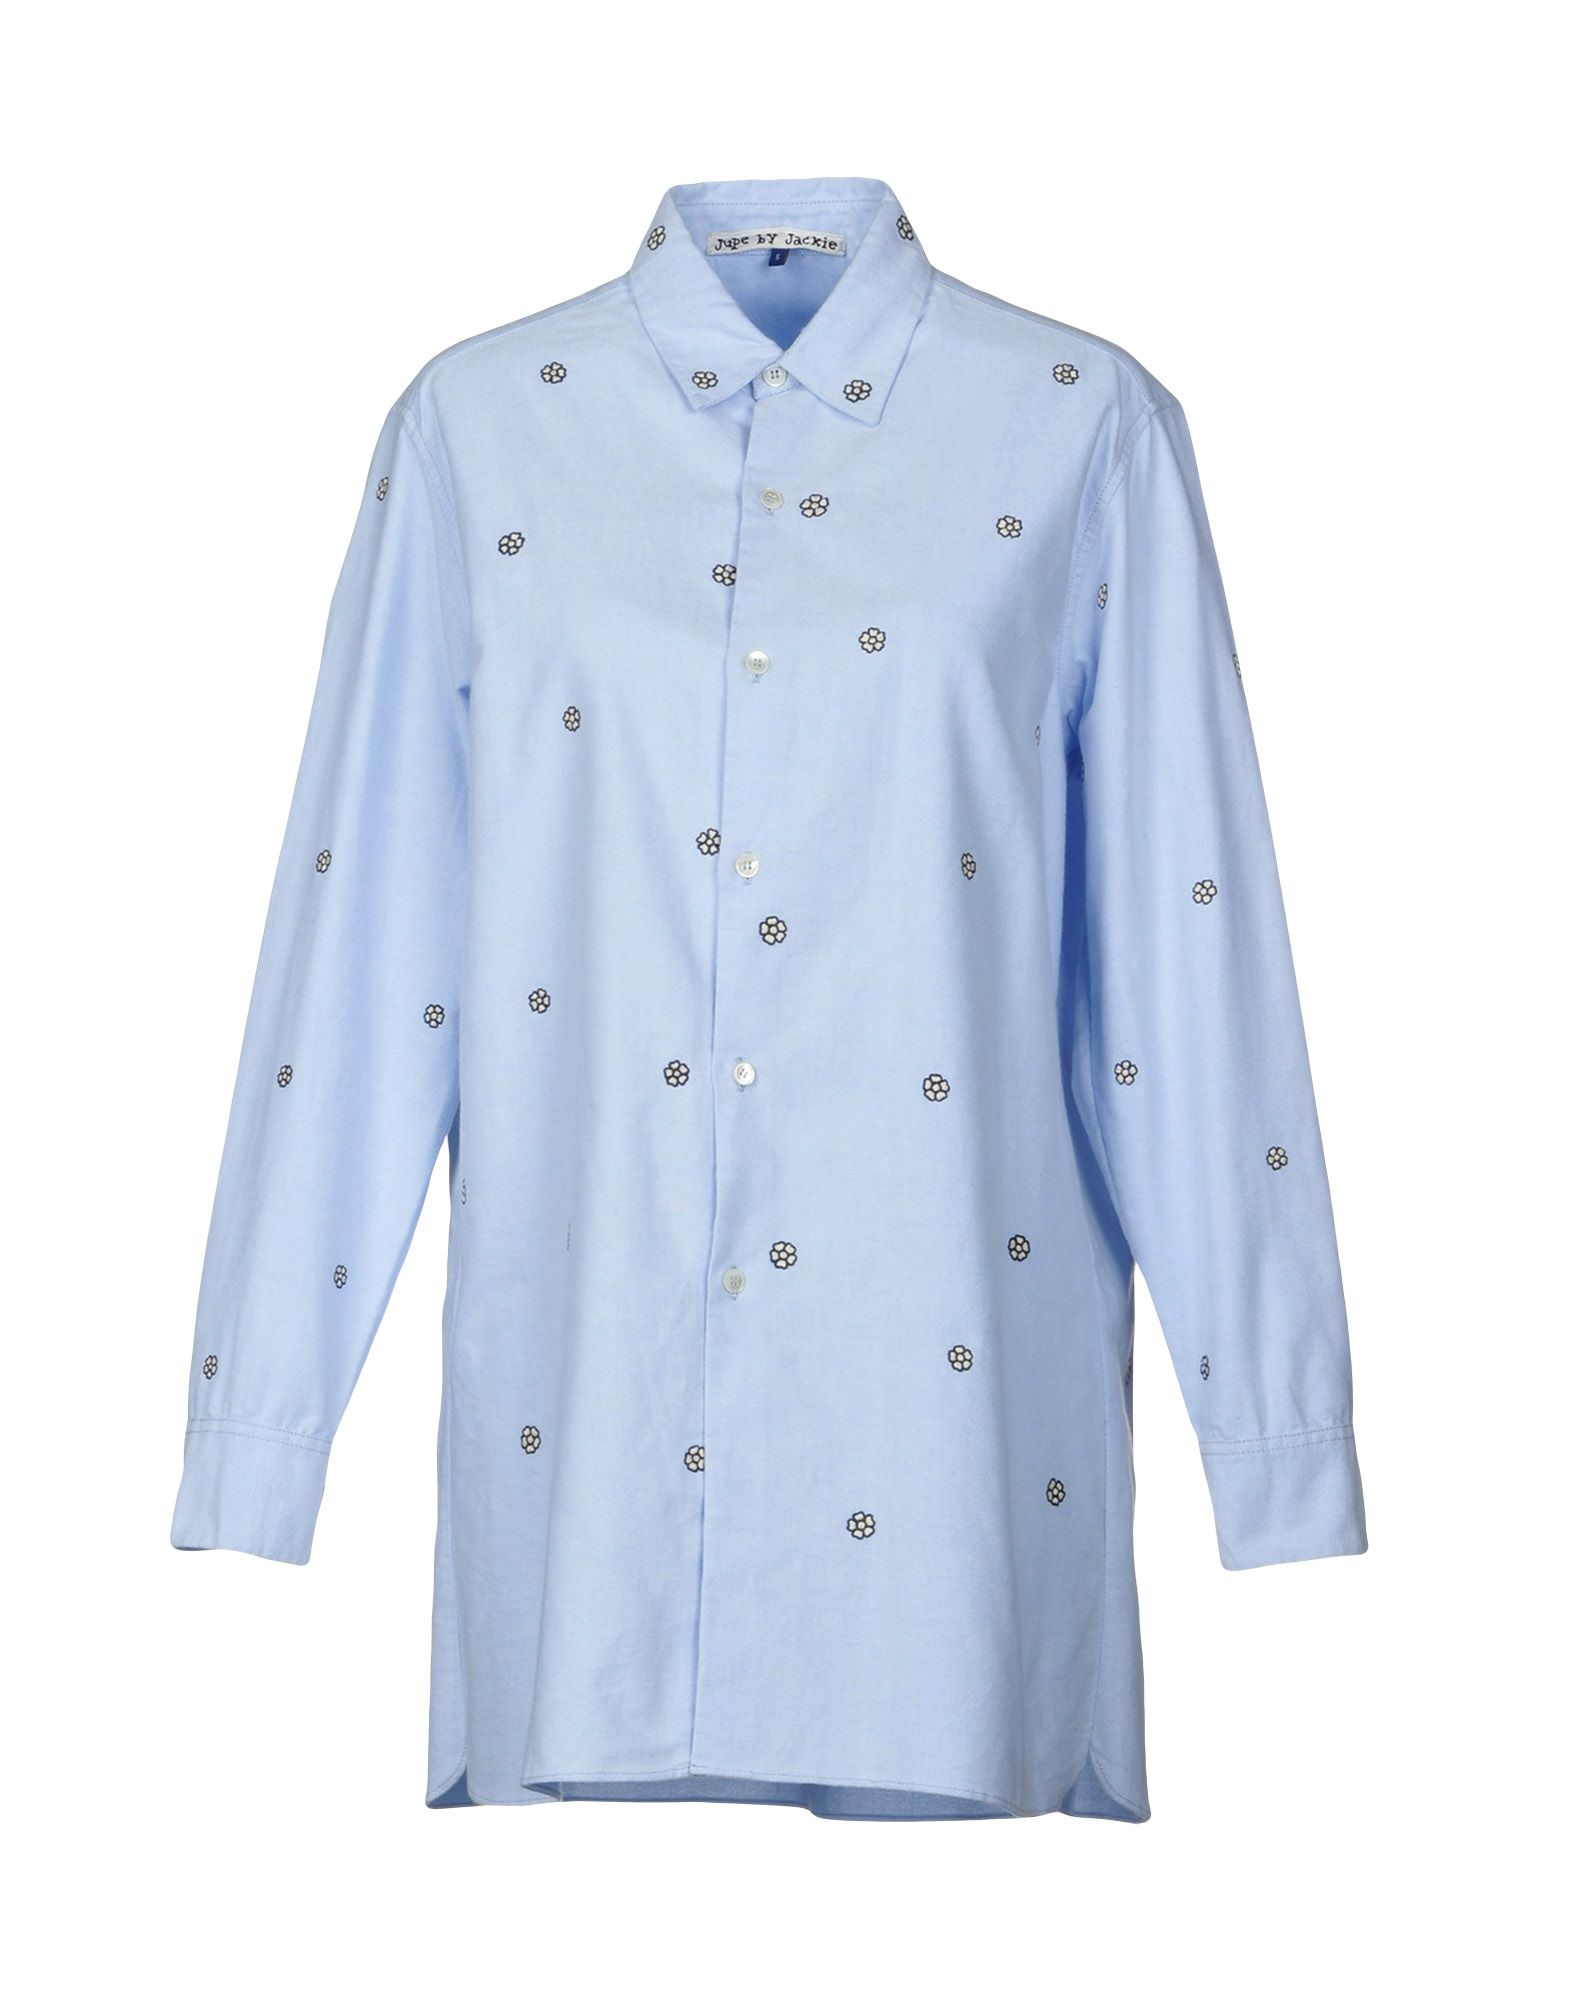 JUPE BY JACKIE Solid Color Shirts & Blouses in Sky Blue